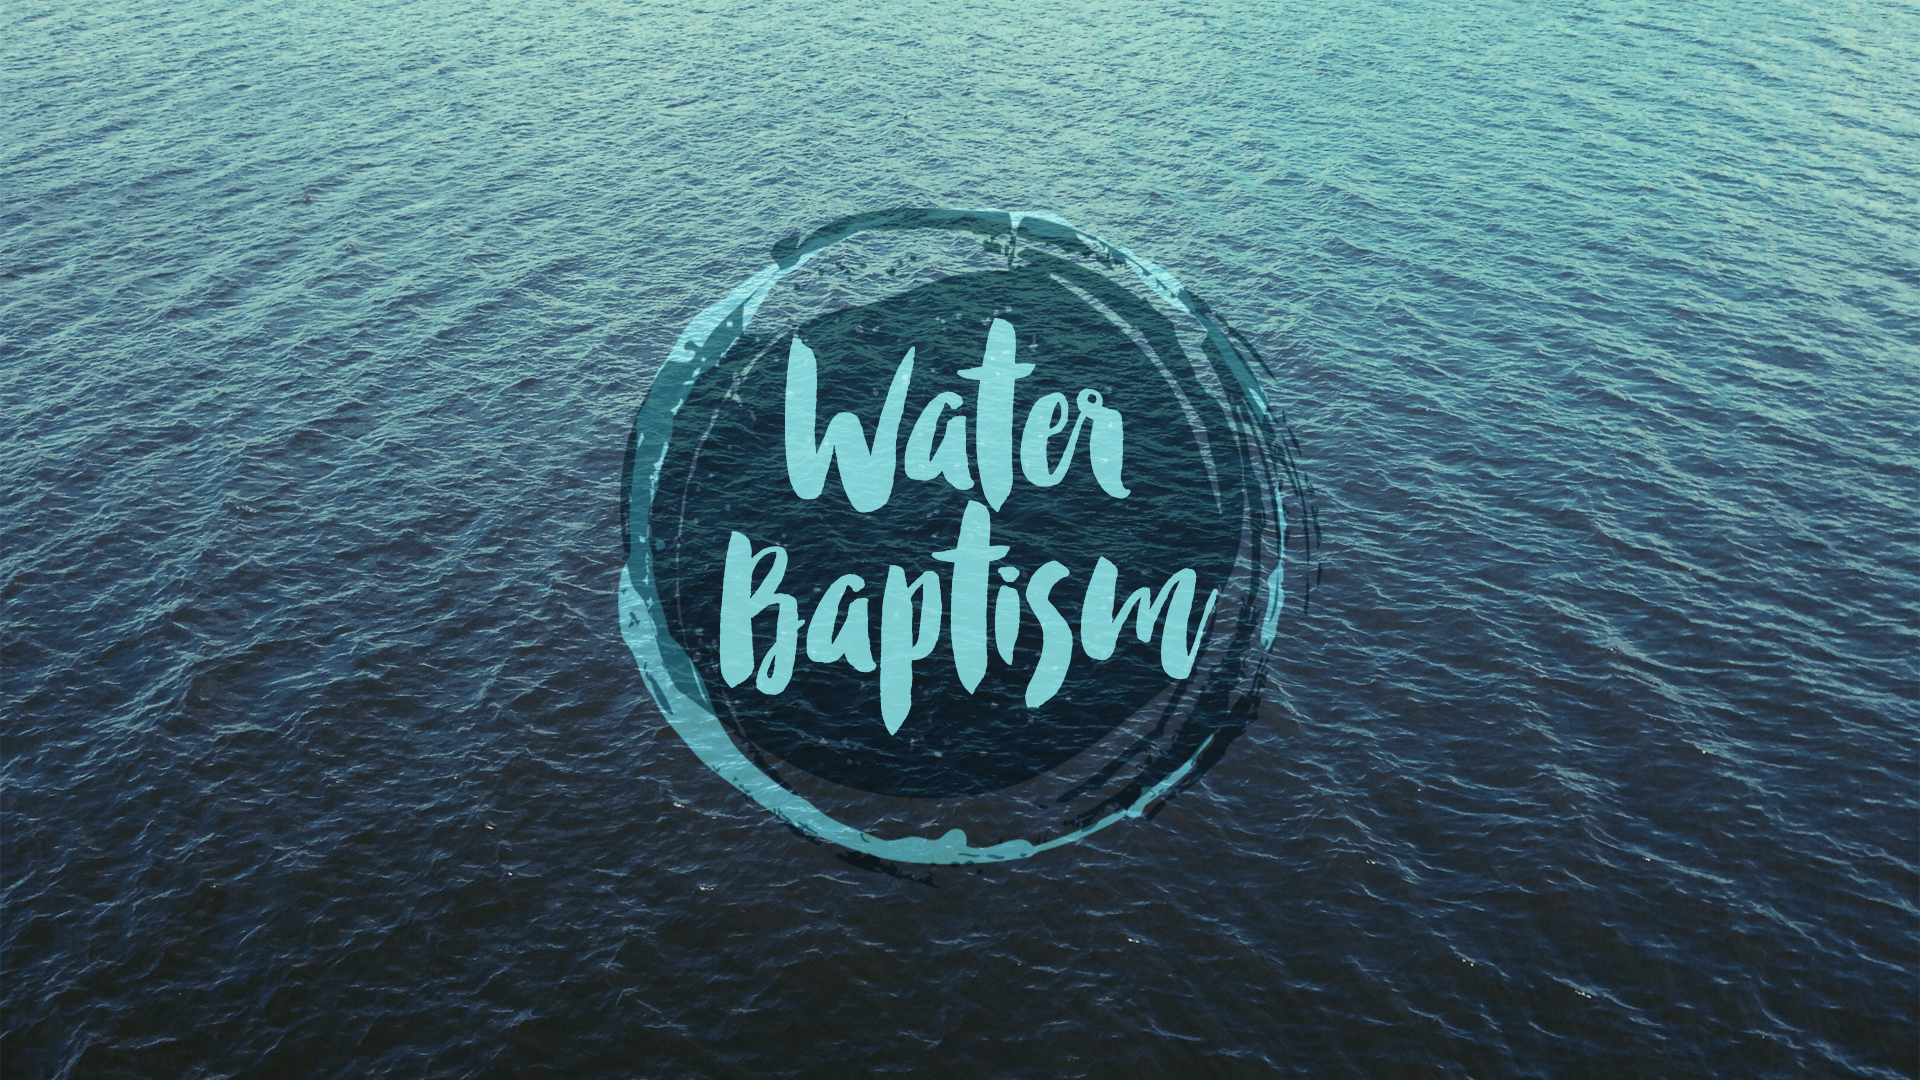 Water baptism graphic